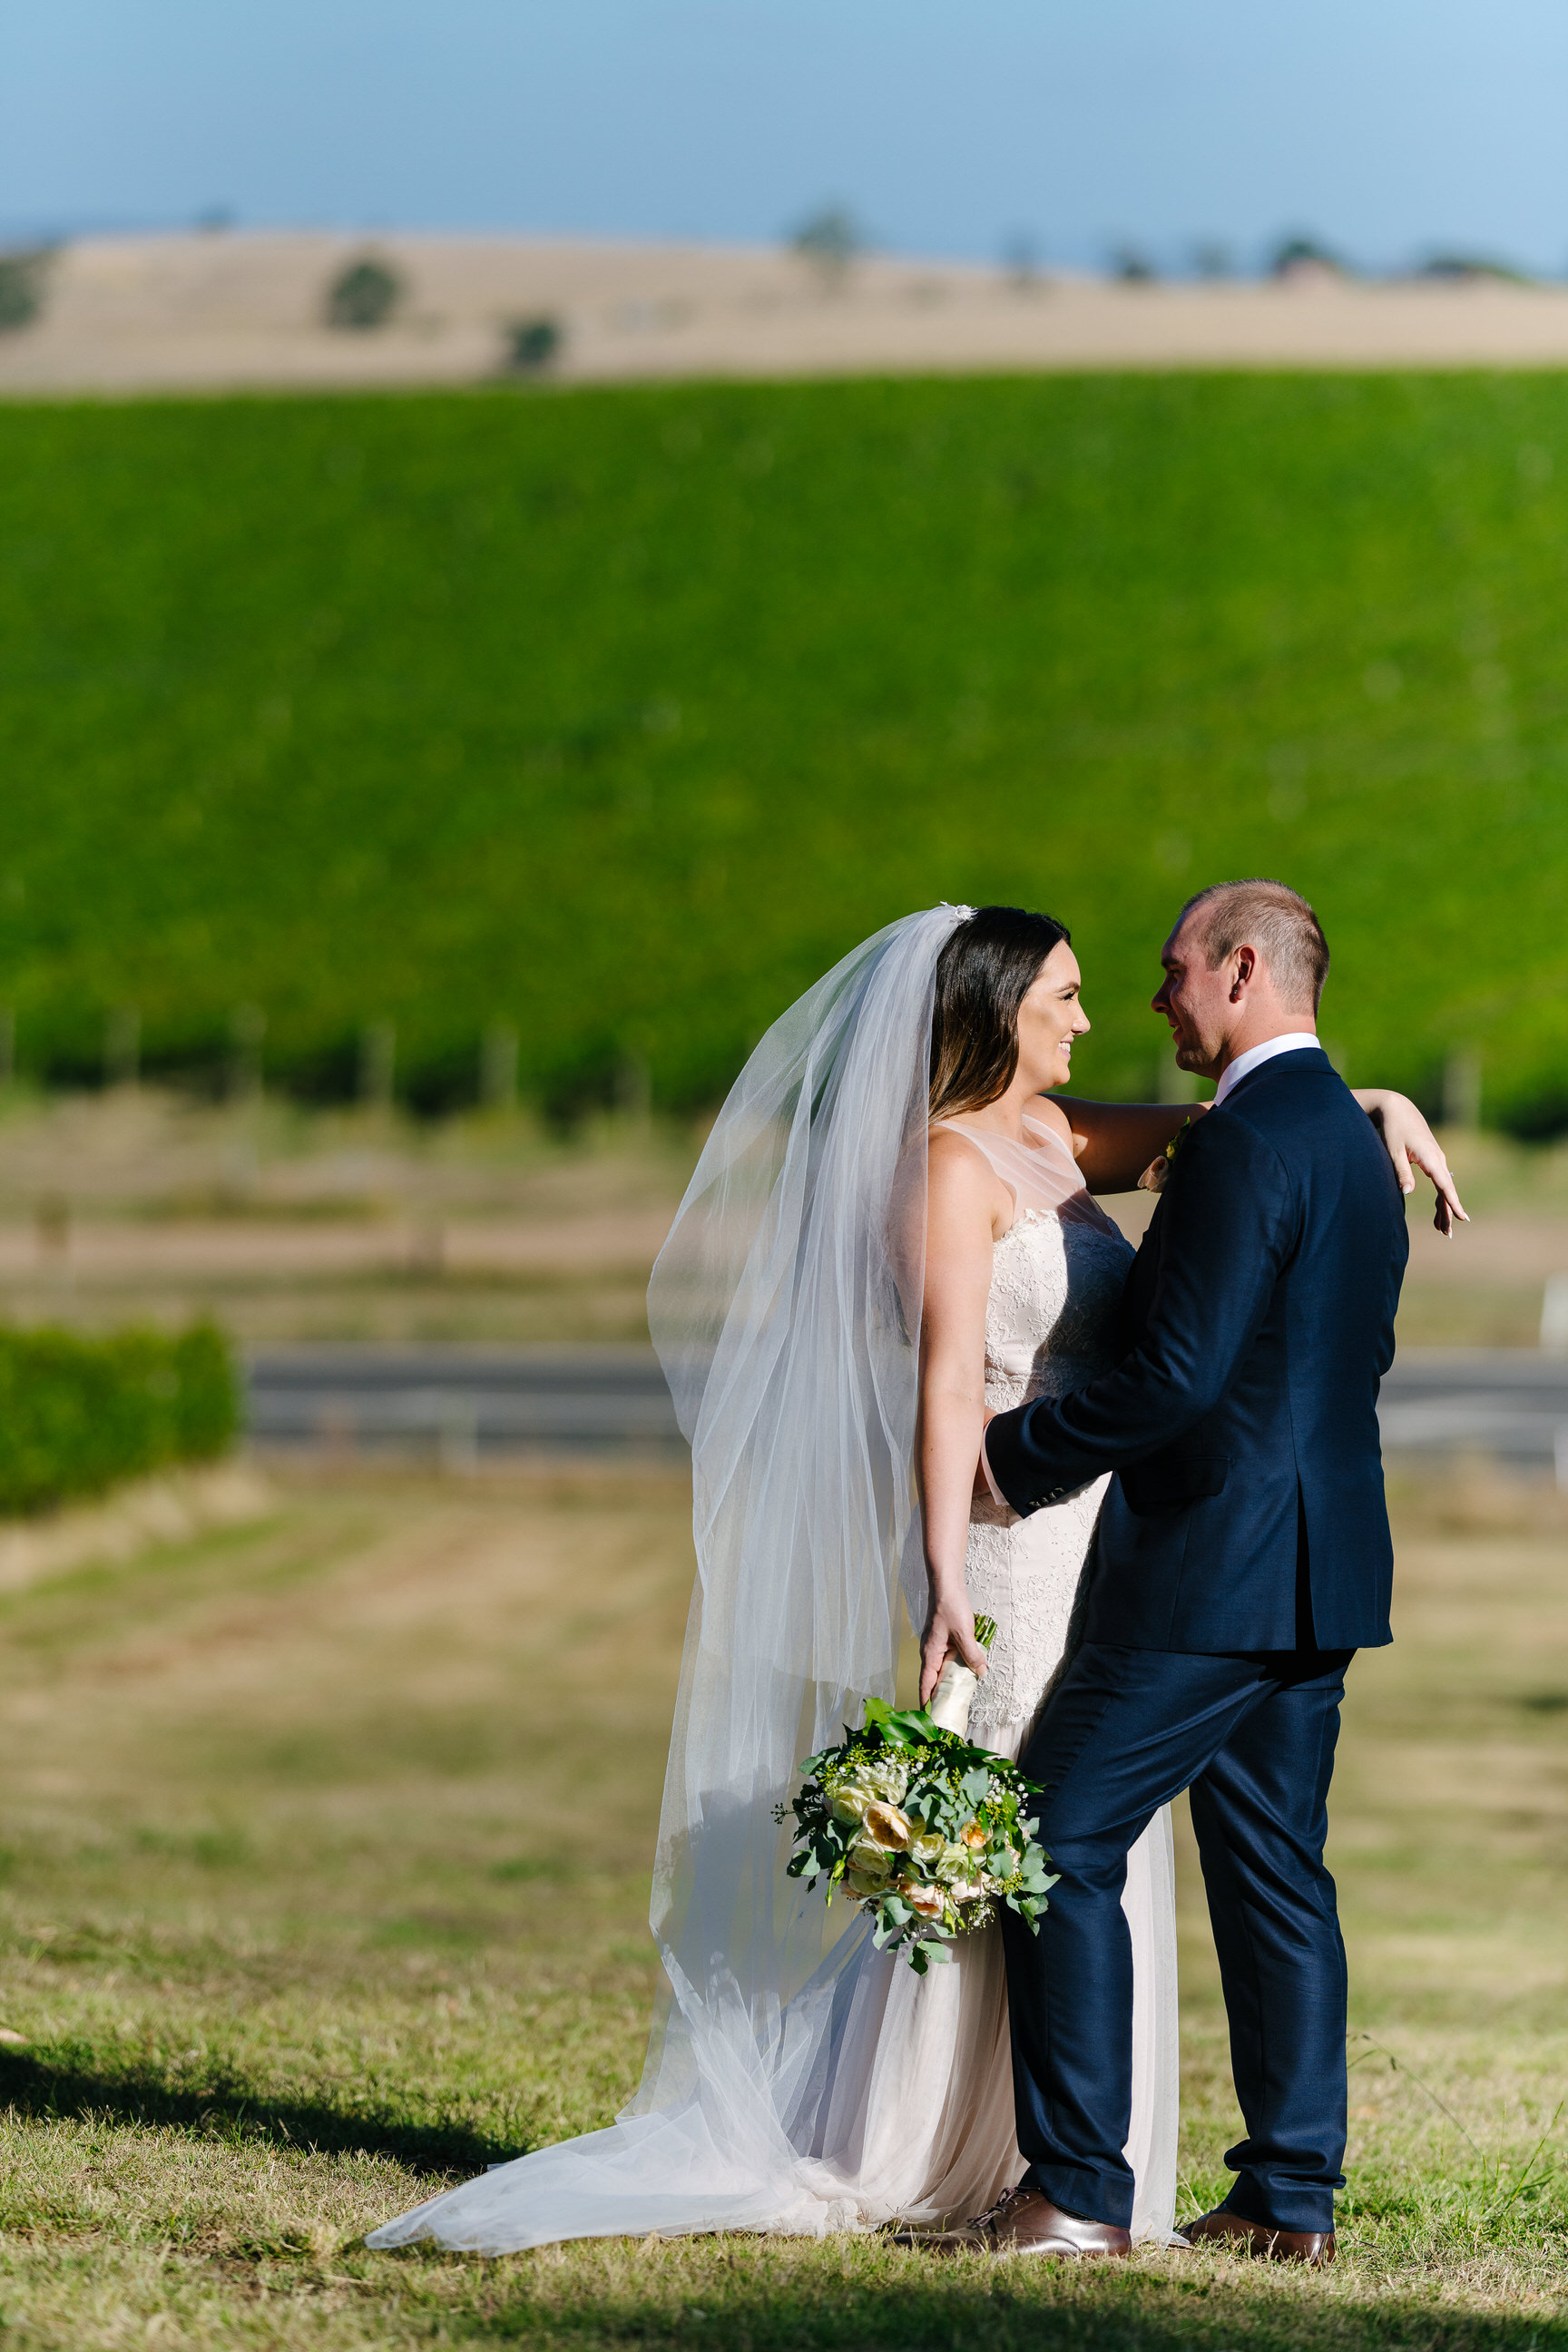 Justin_And_Jim_Photography_Balgownie_Winery_Wedding47.JPG